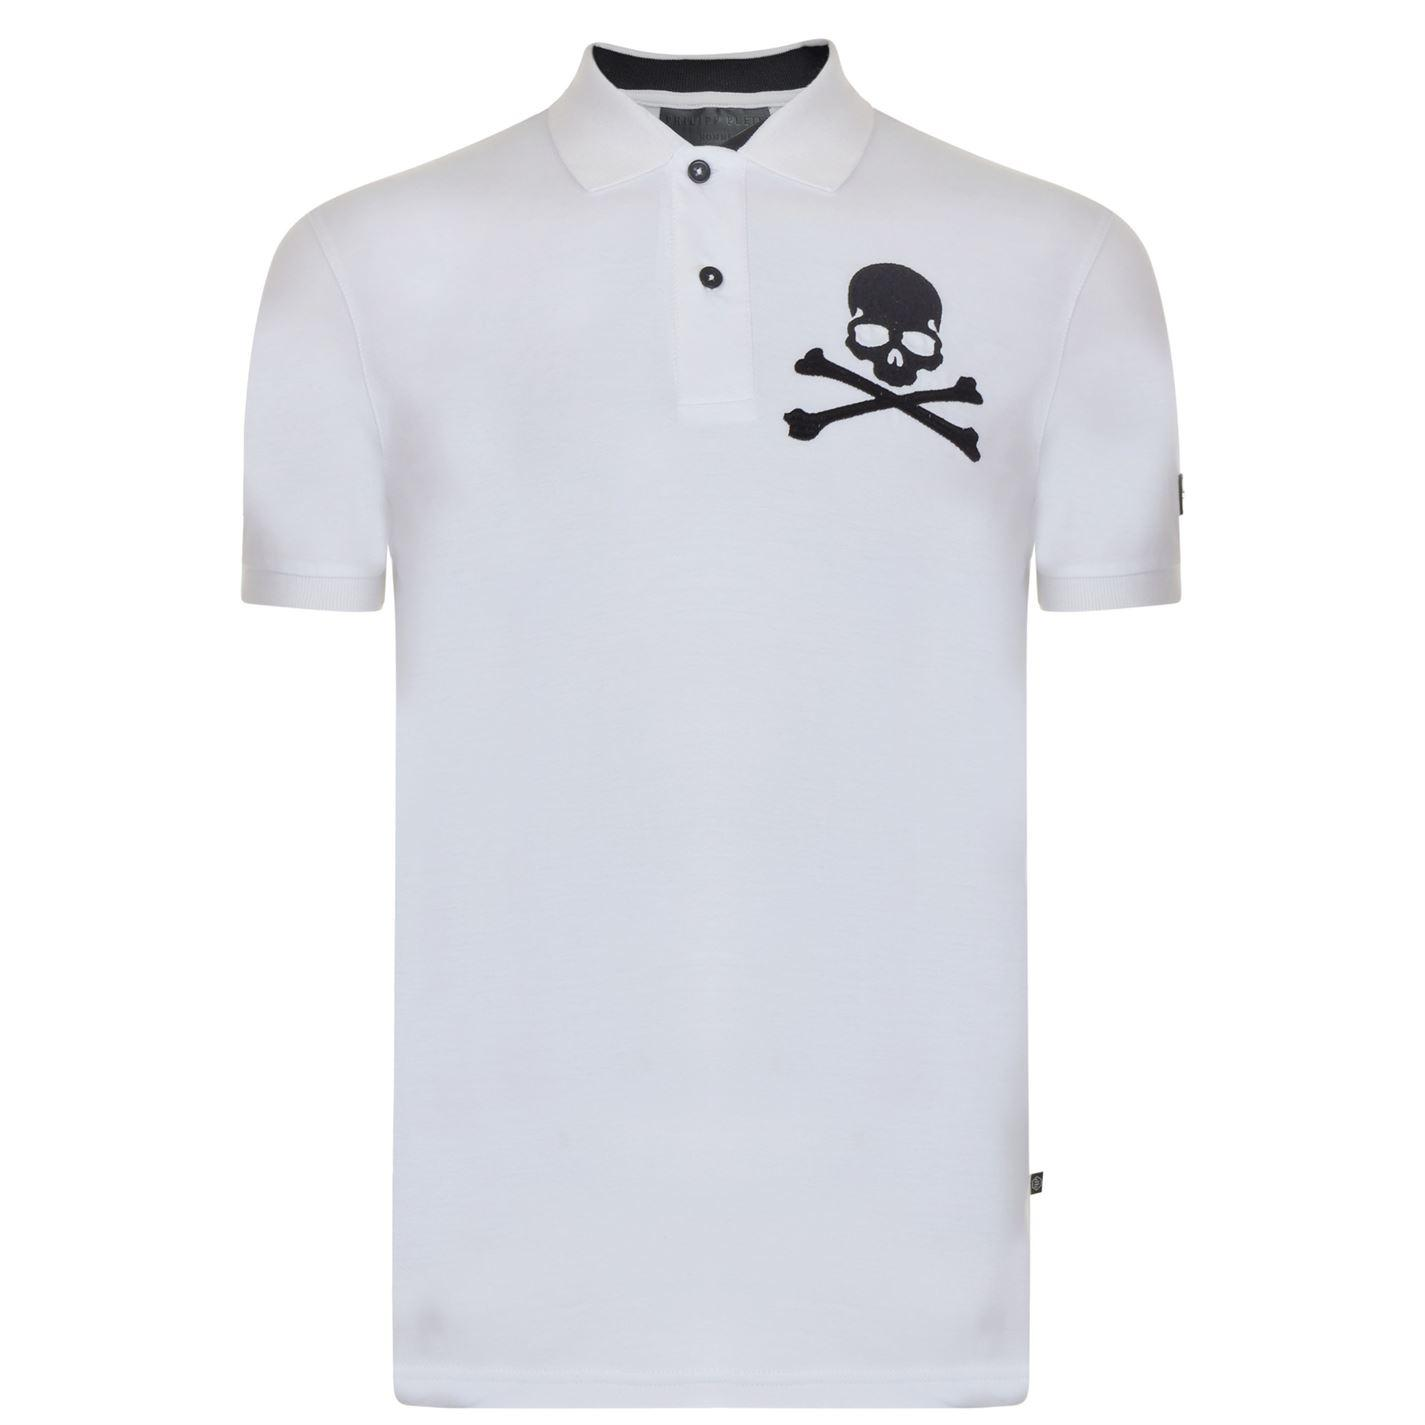 6b714293f732 philipp-plein-WhiteBlack-Skull-And-Crossbones-Polo-Shirt.jpeg